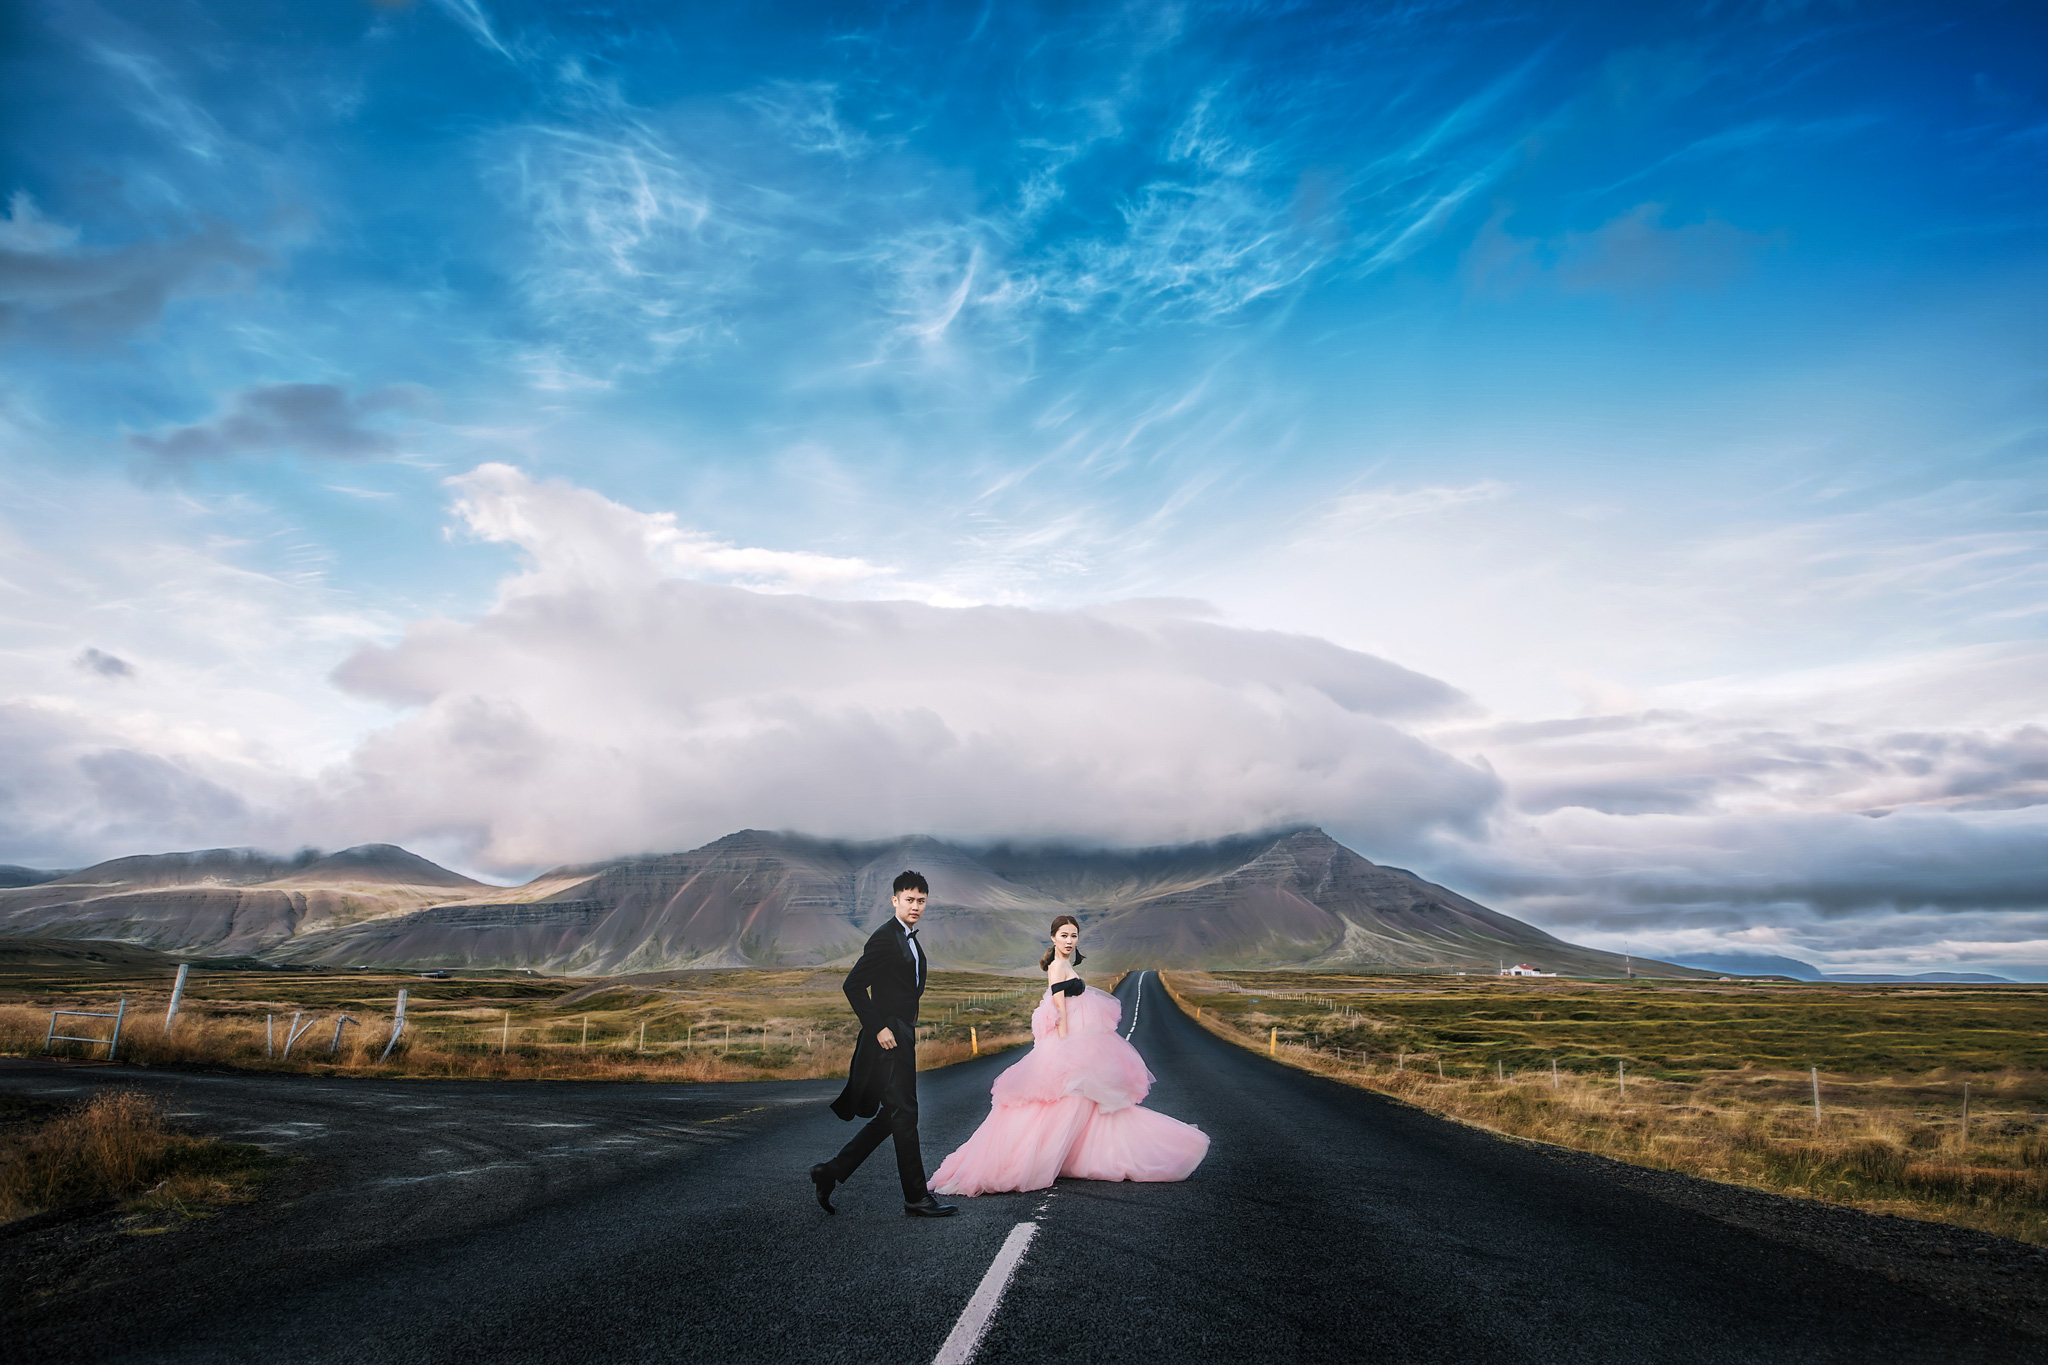 Bride and groom walking across road against hills - photo by Edwin Tan Photography